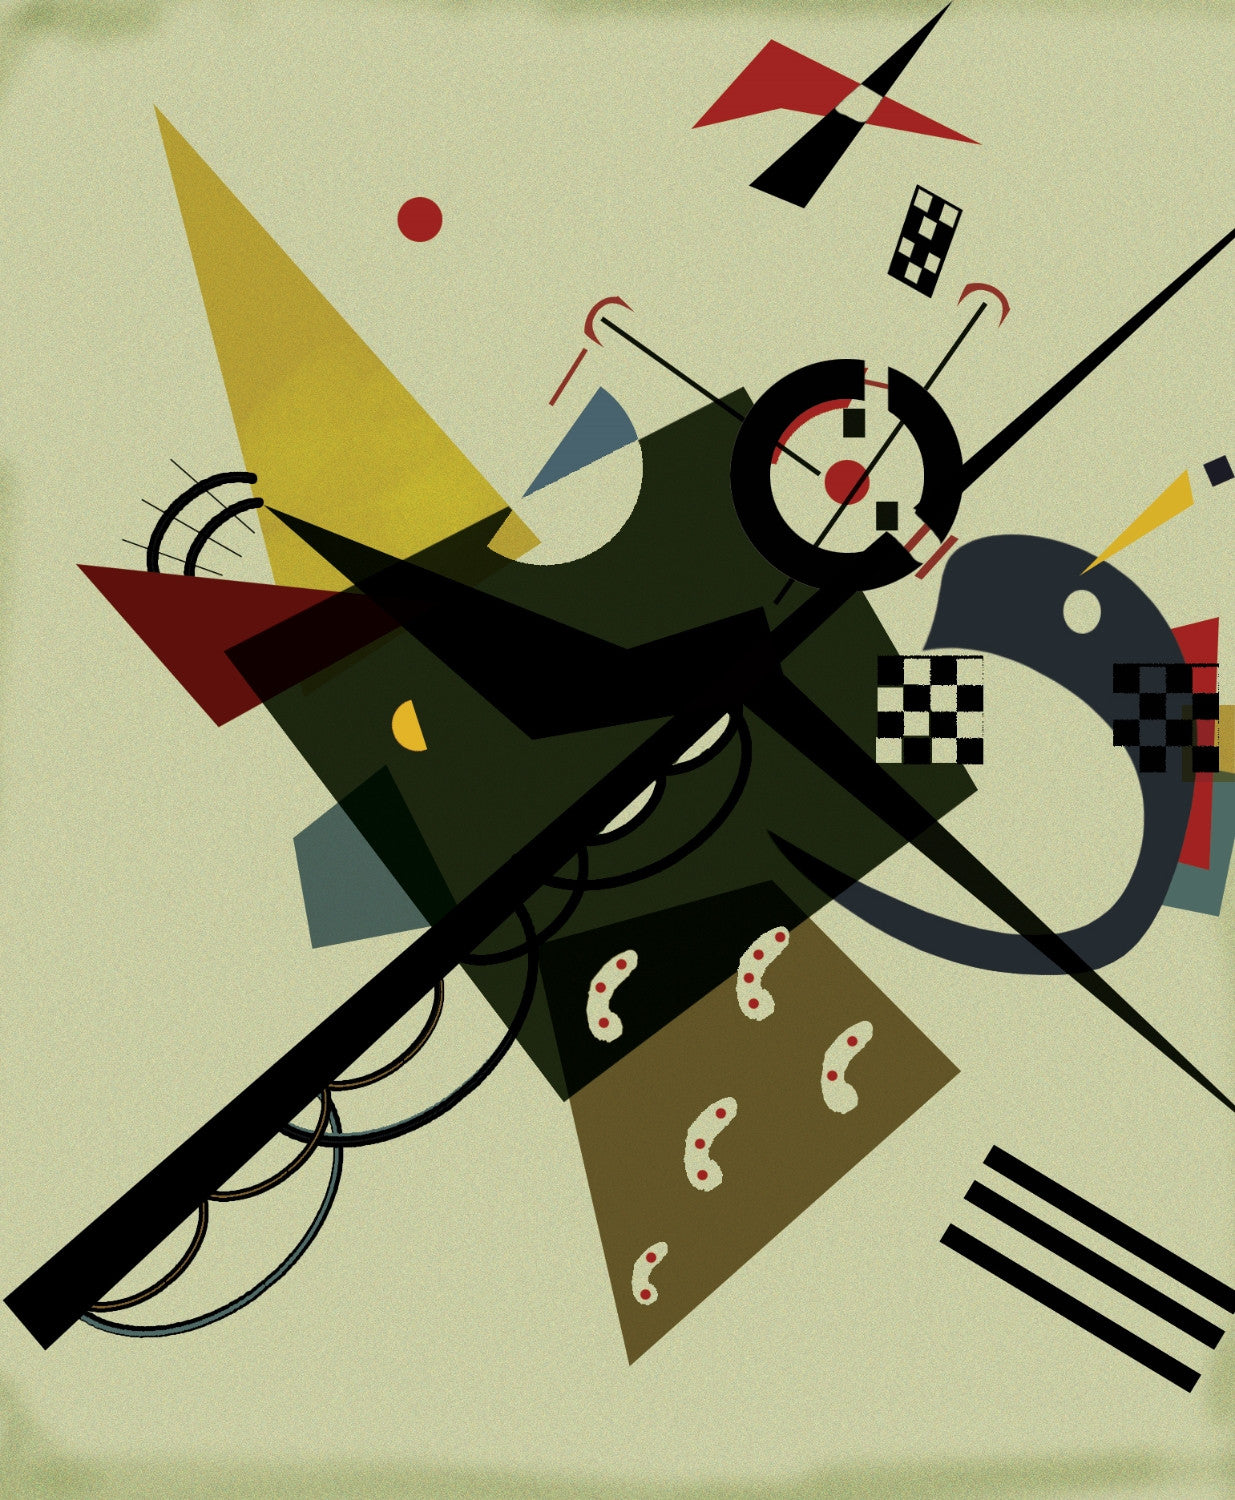 Wassily Kandinsky Paintings | Buy Posters, Frames, Canvas, Digital Art & Large Size Prints Of The Famous Modern Master's Artworks